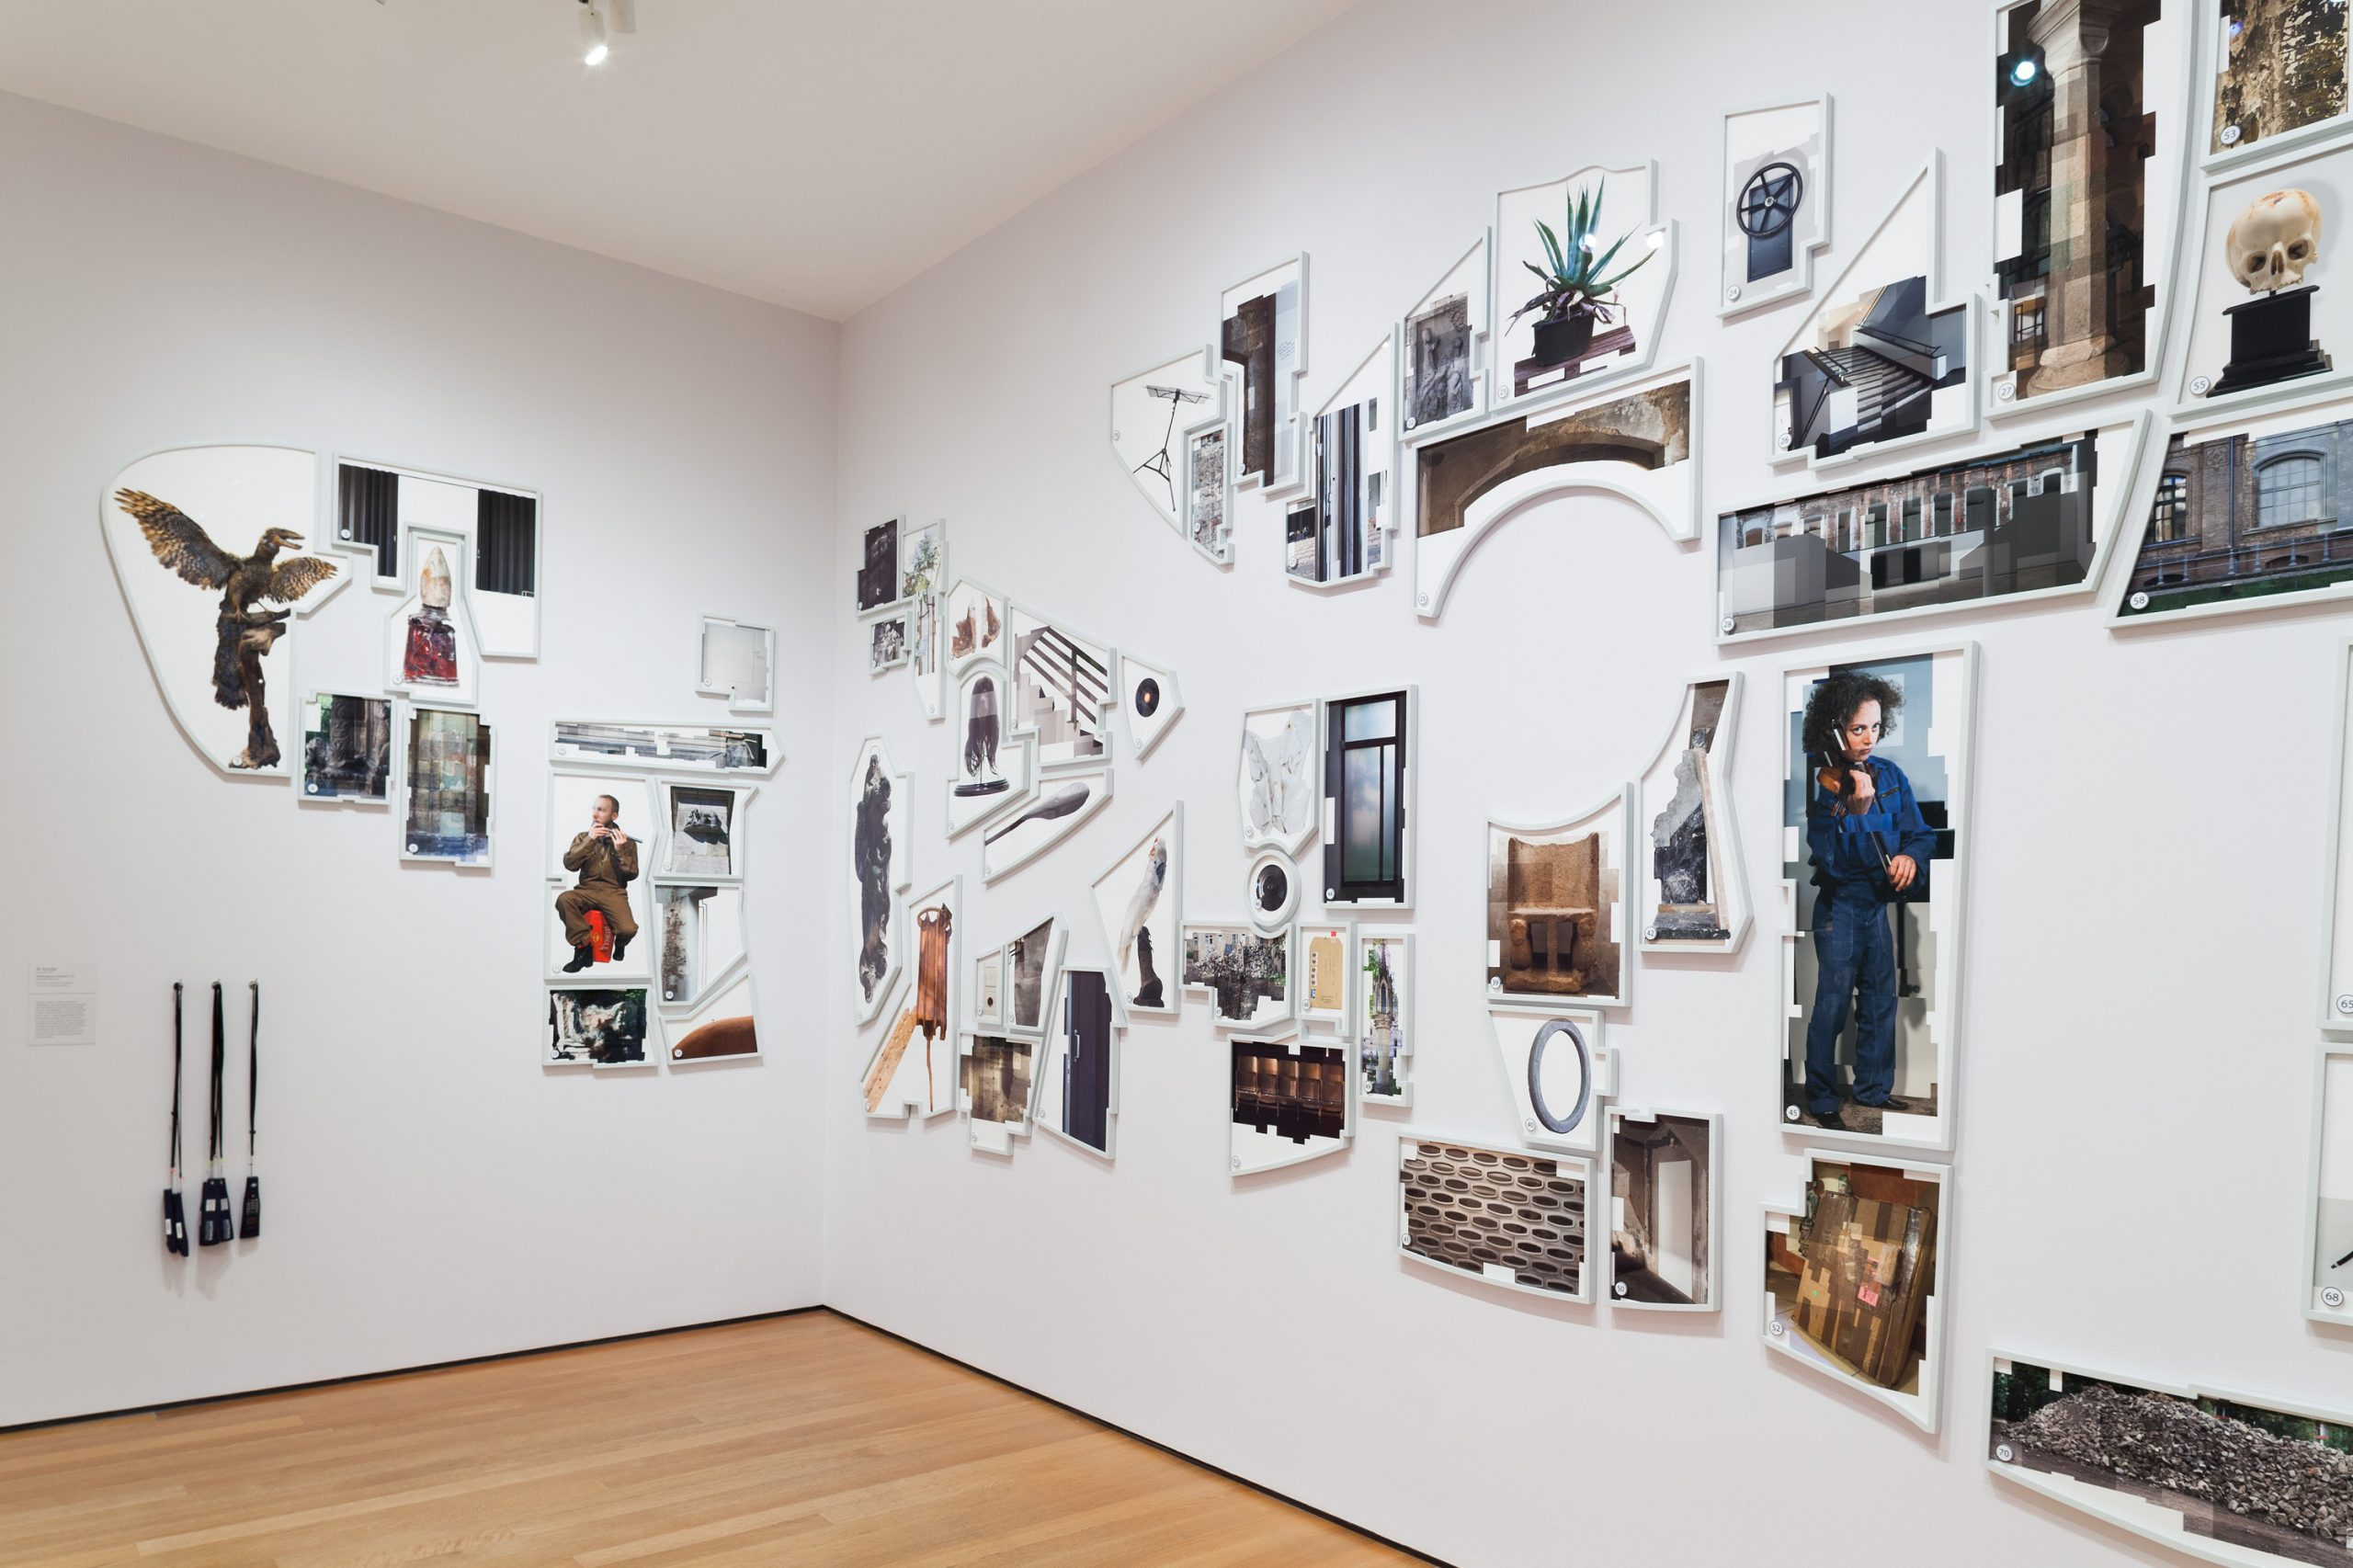 Ilit Azoulay, Shifting Degrees of Certainty, 2014, installatiov view MoMA New York, Ocean of Images: New Photography 2015